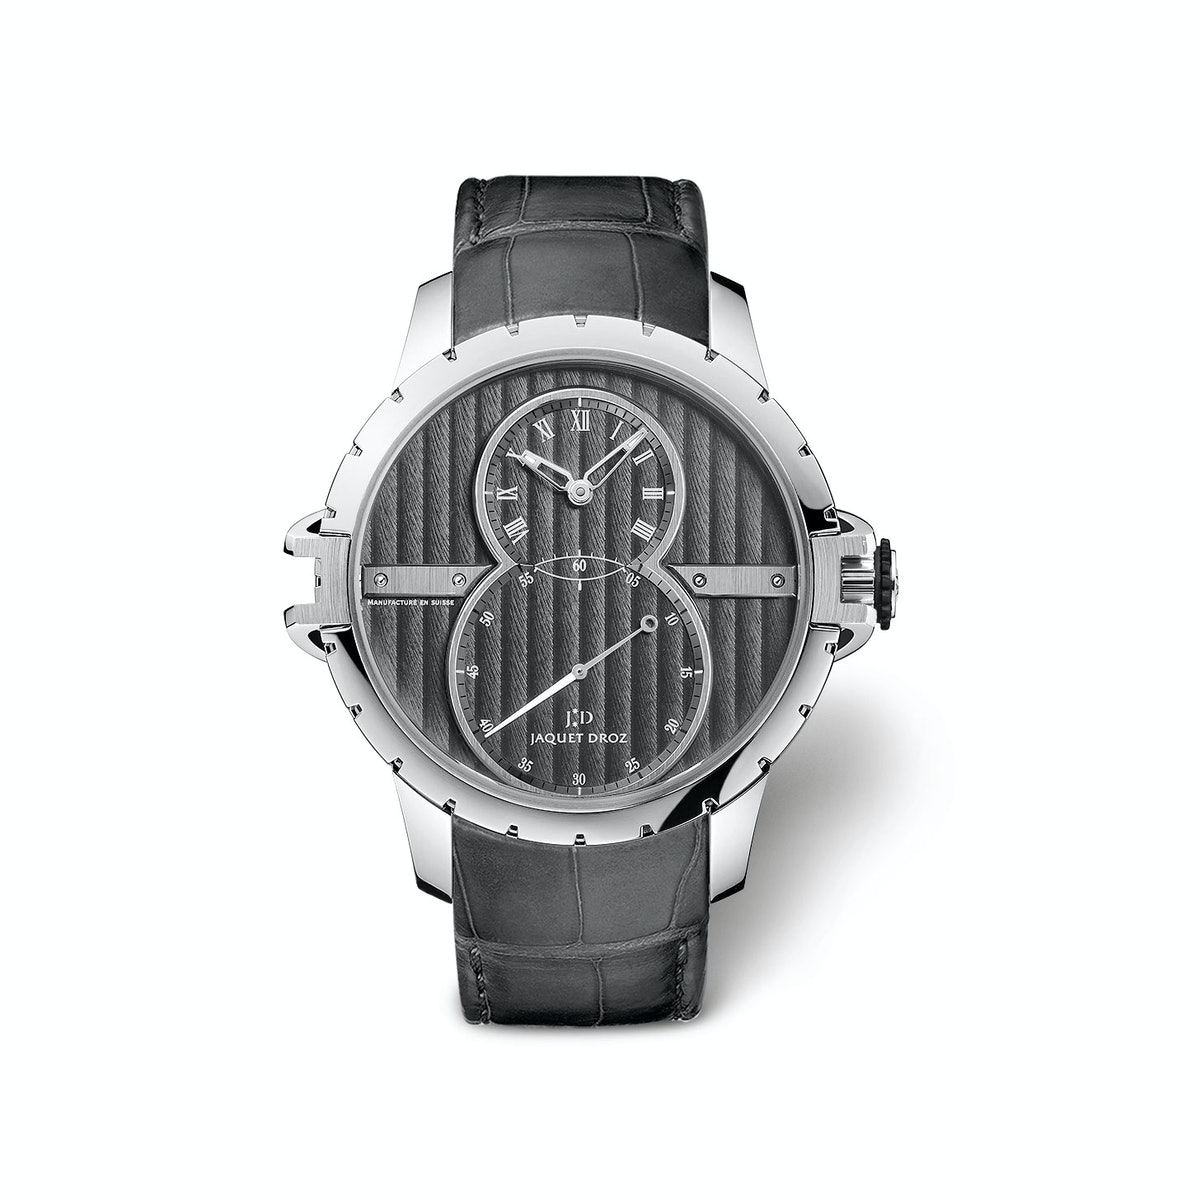 Jaquet Droz stainless steel watch